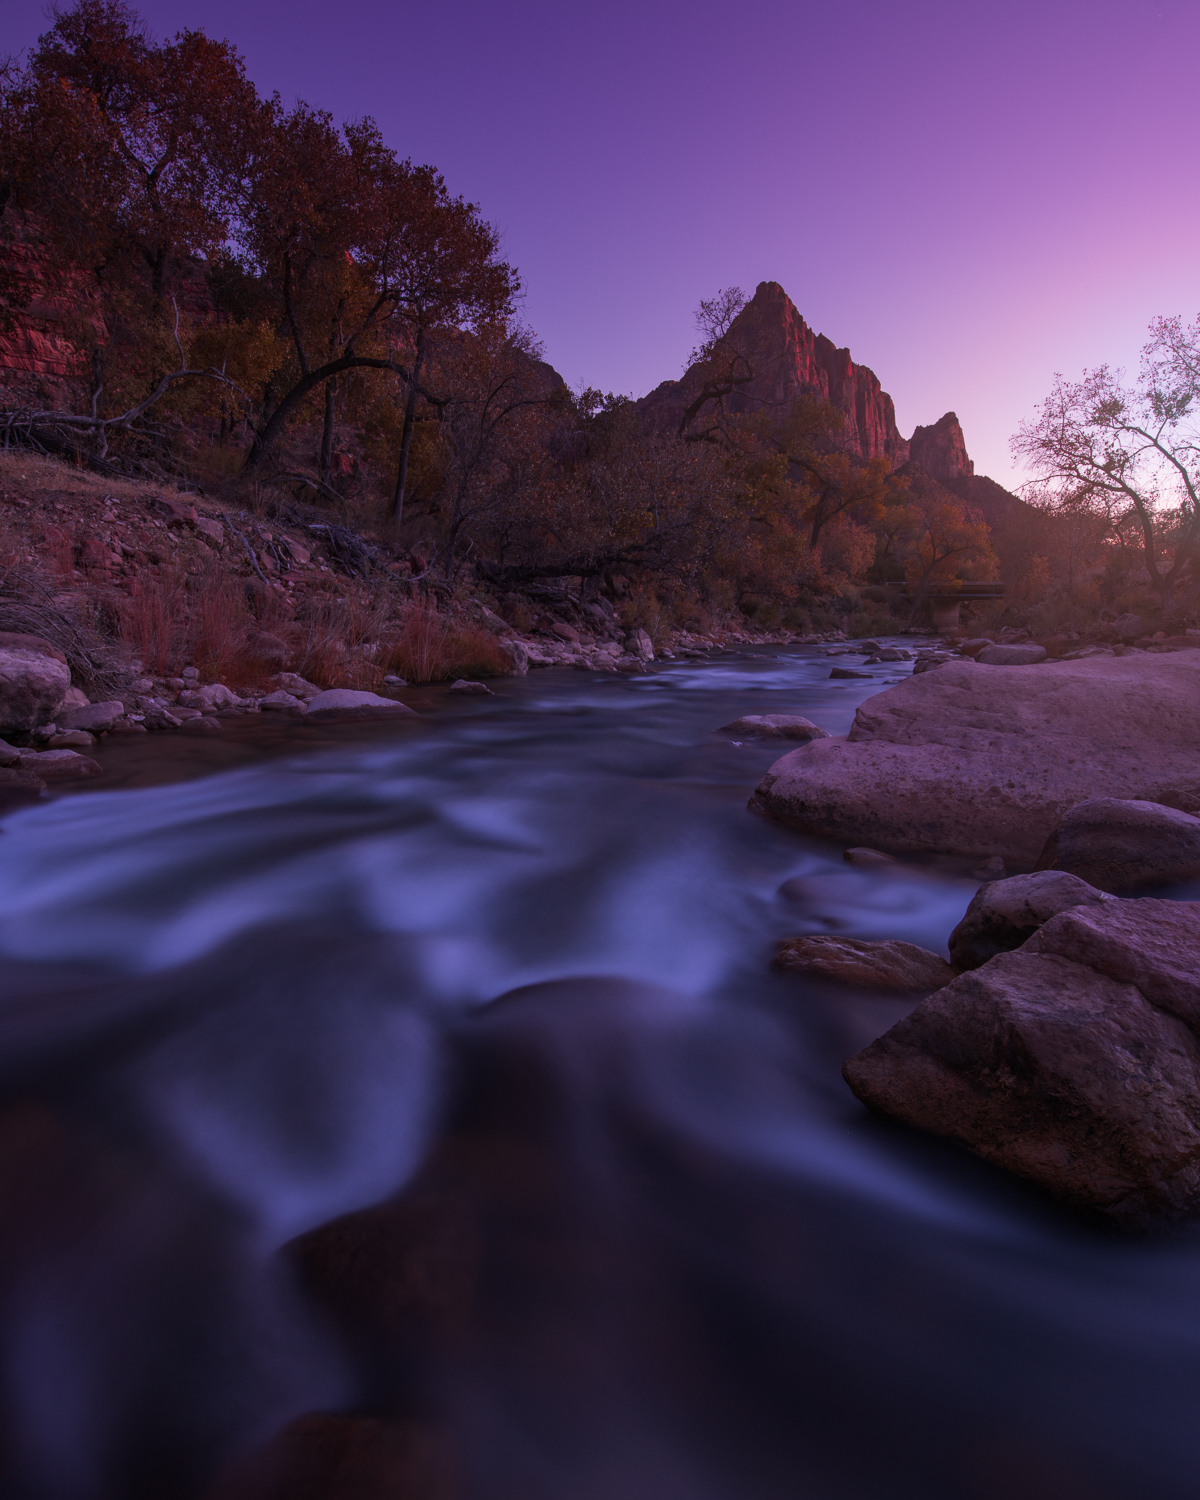 The Virgin River flows below the Watchman at twilight in Zion National Park.